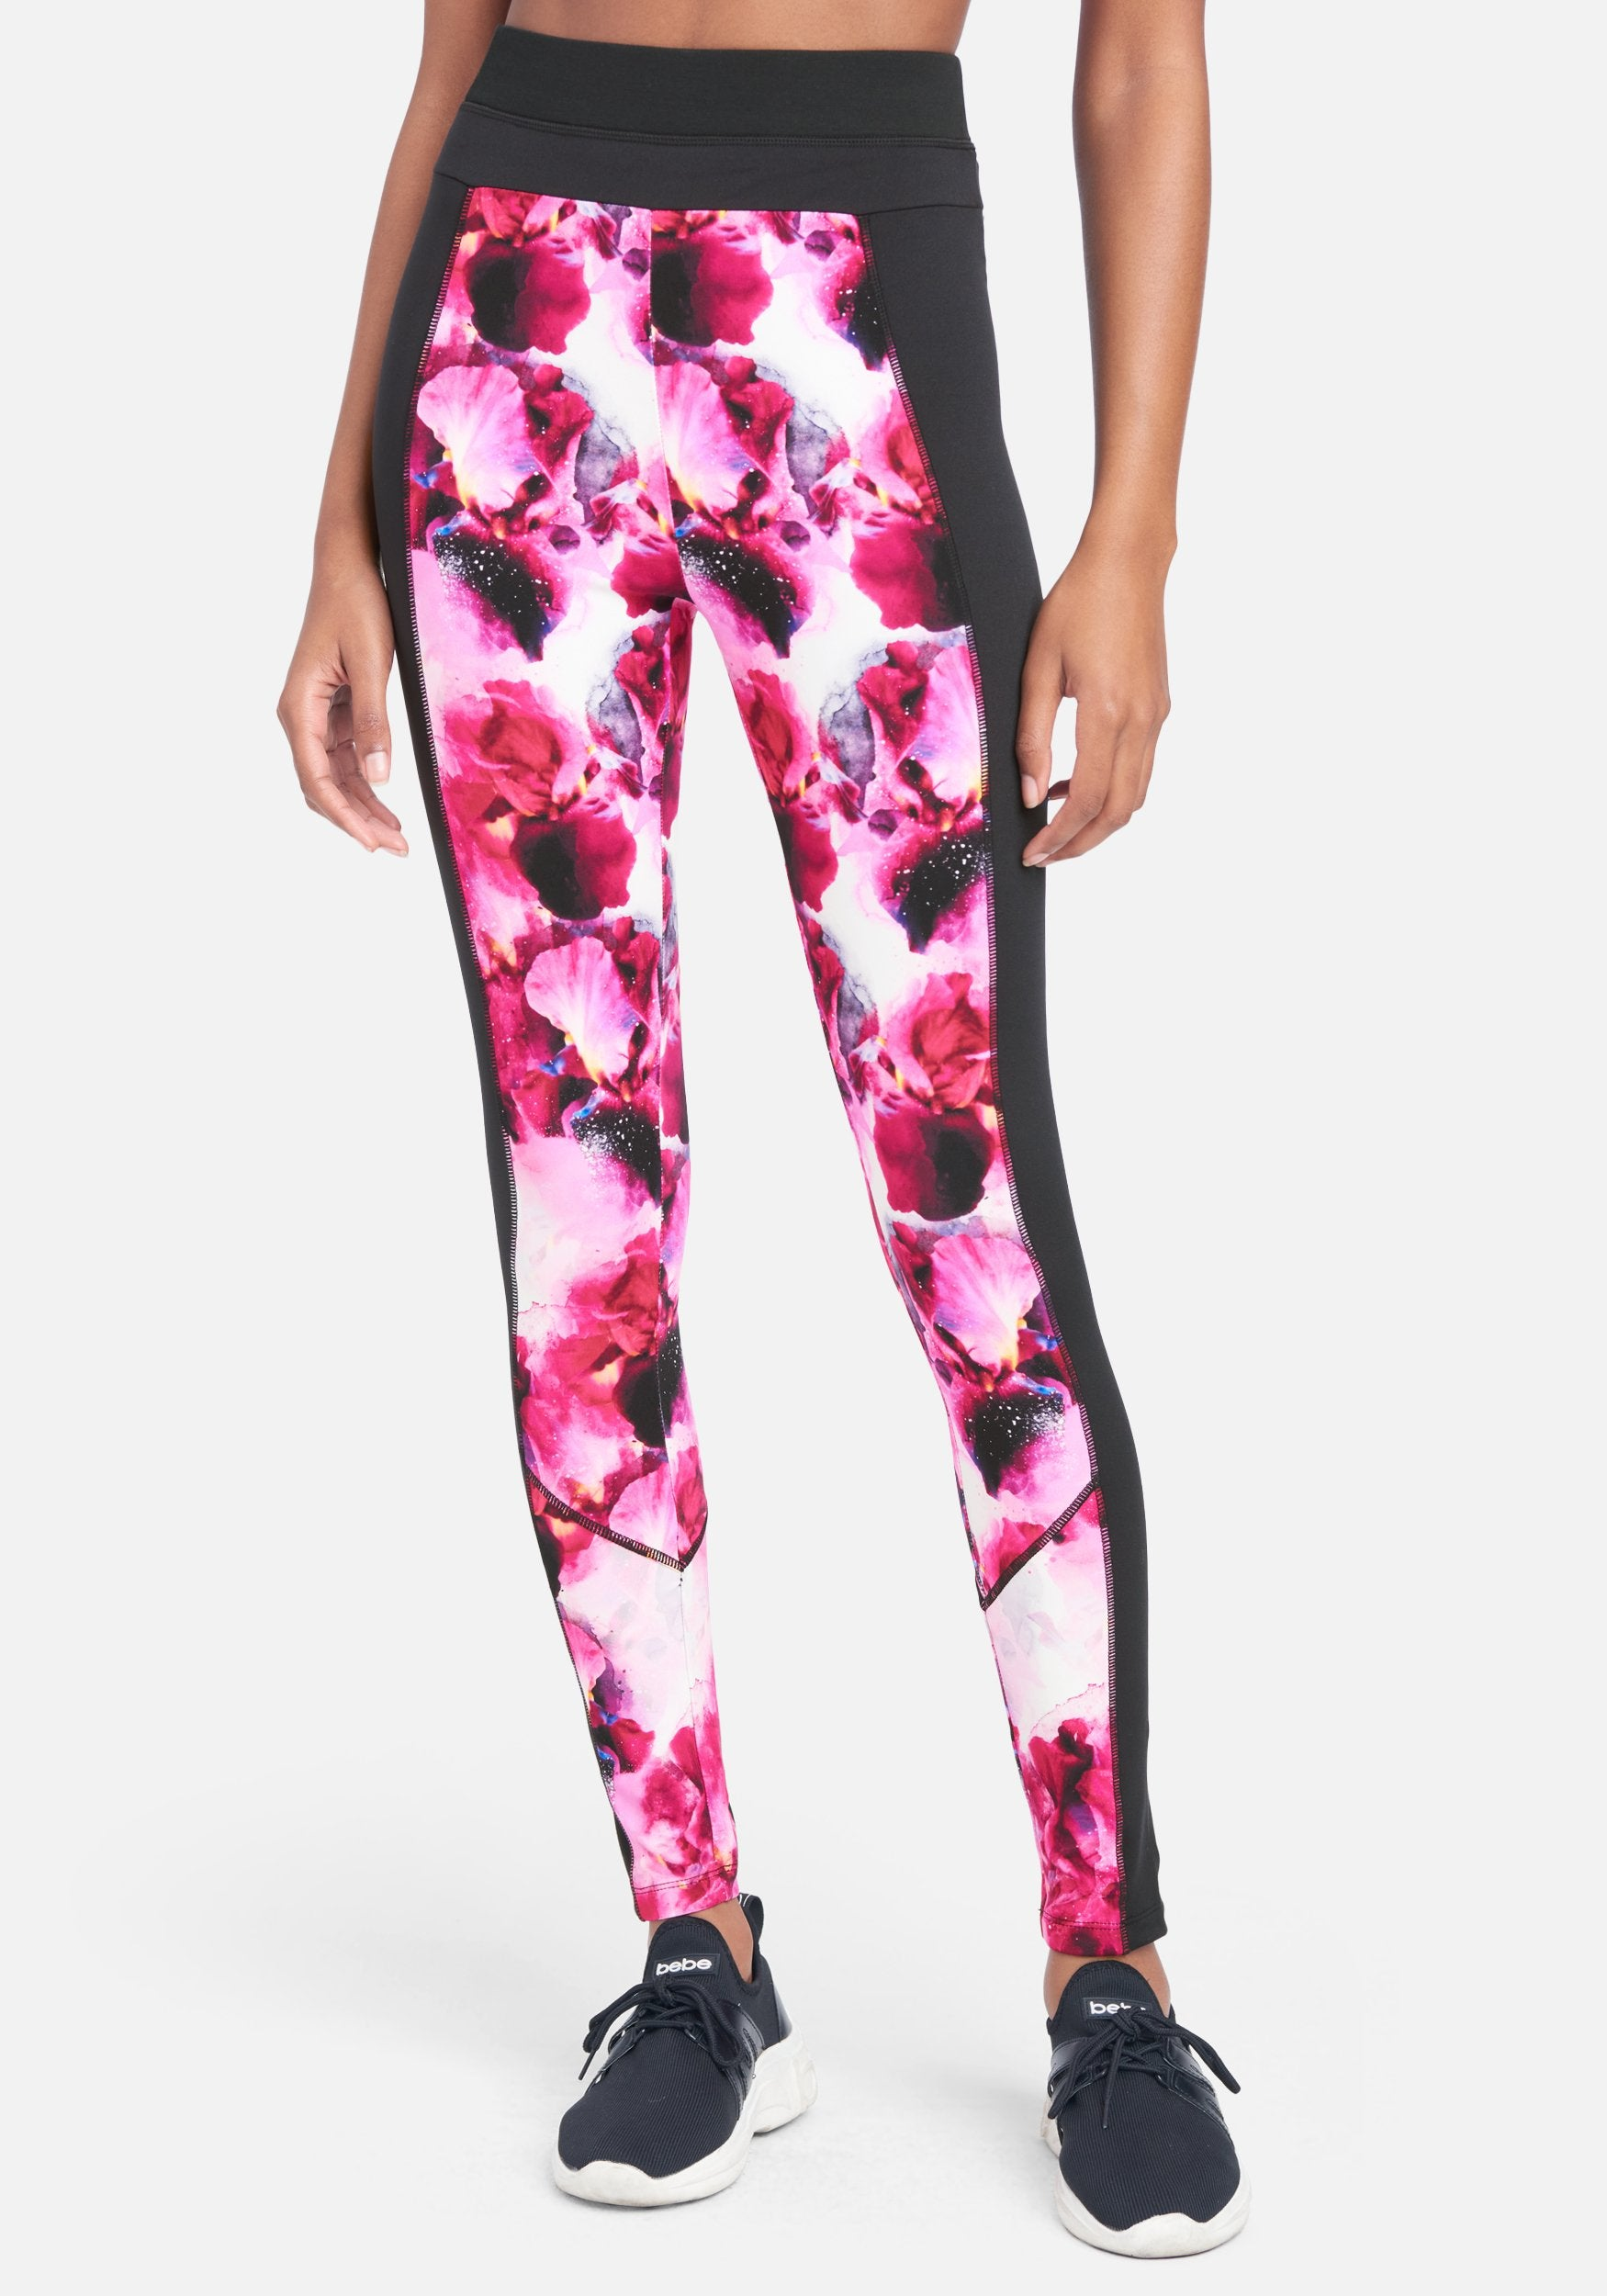 Bebe Women's Printed Contrast Leggings, Size XS in Floral Fantasy Spandex